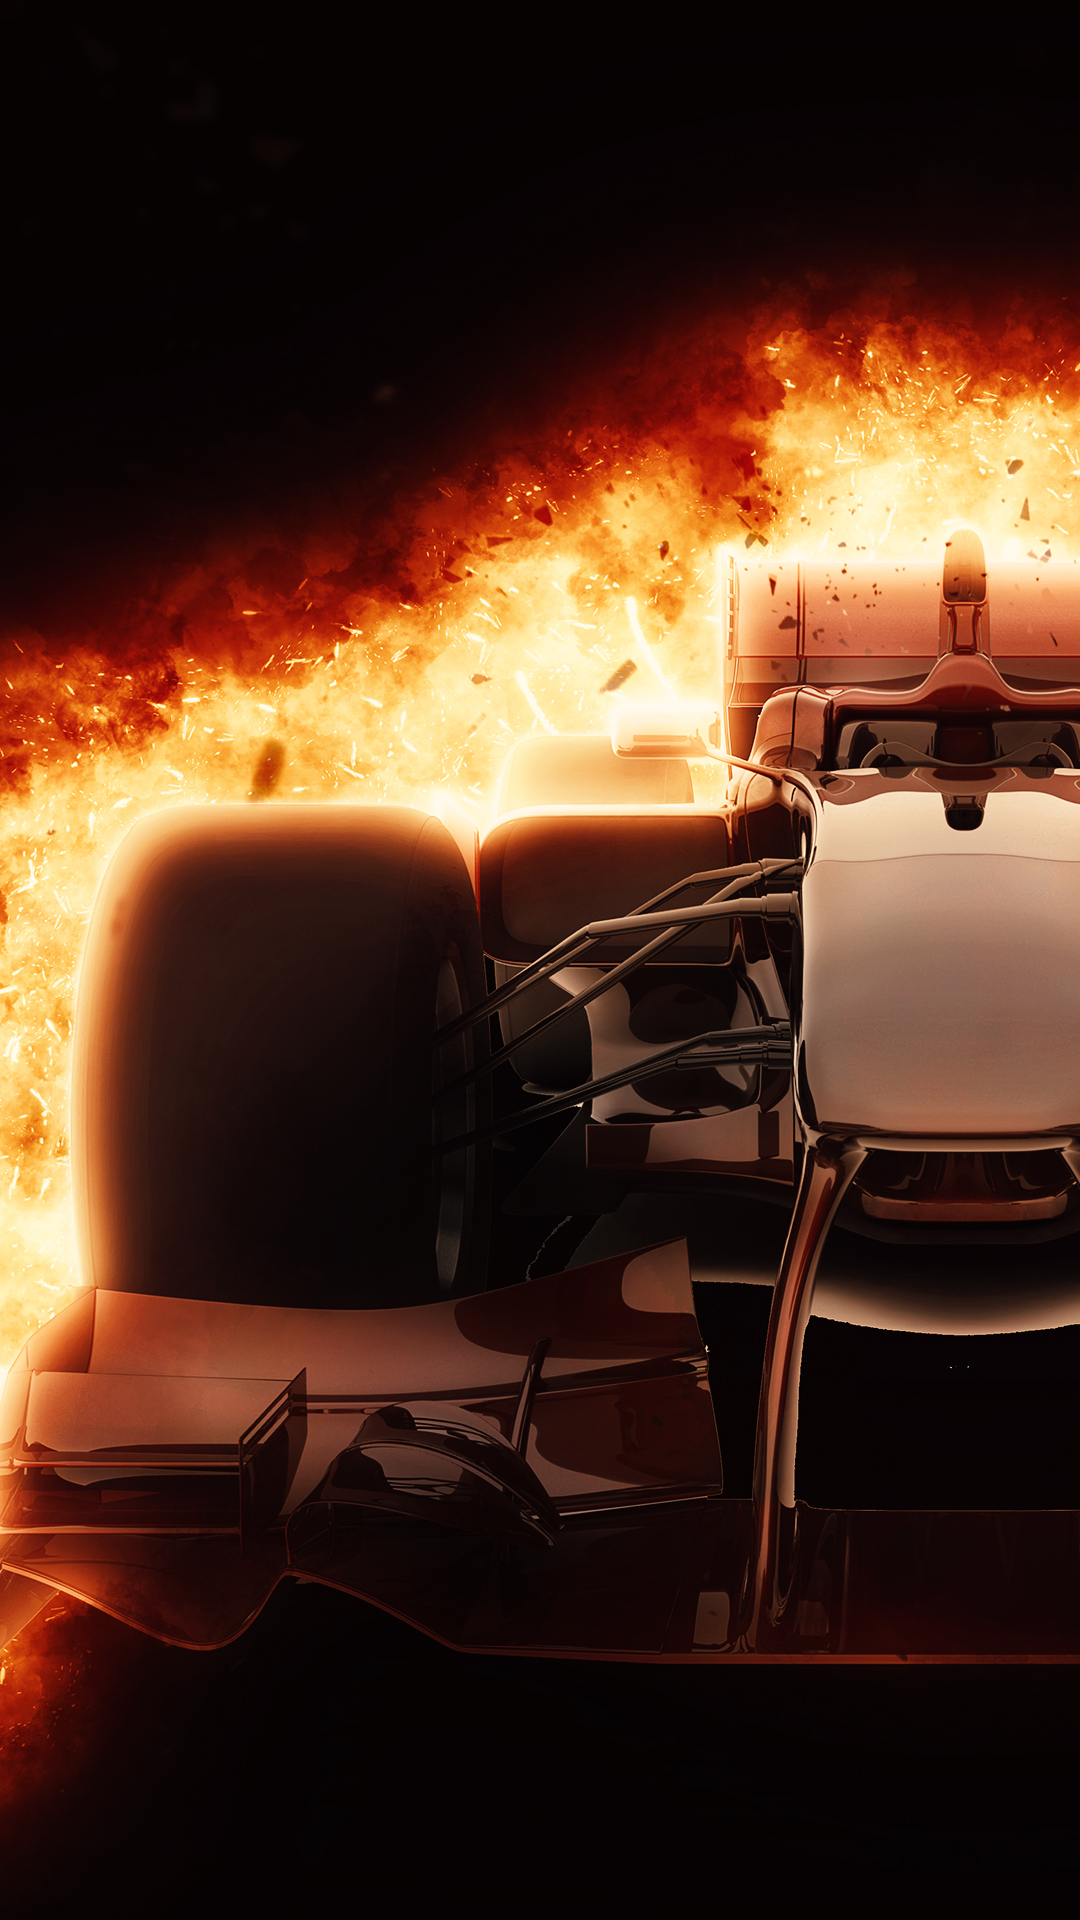 Car Wallpapers For Iphone 6 Burning F1 Car 1080 X 1920 Hd Phone Wallpaper